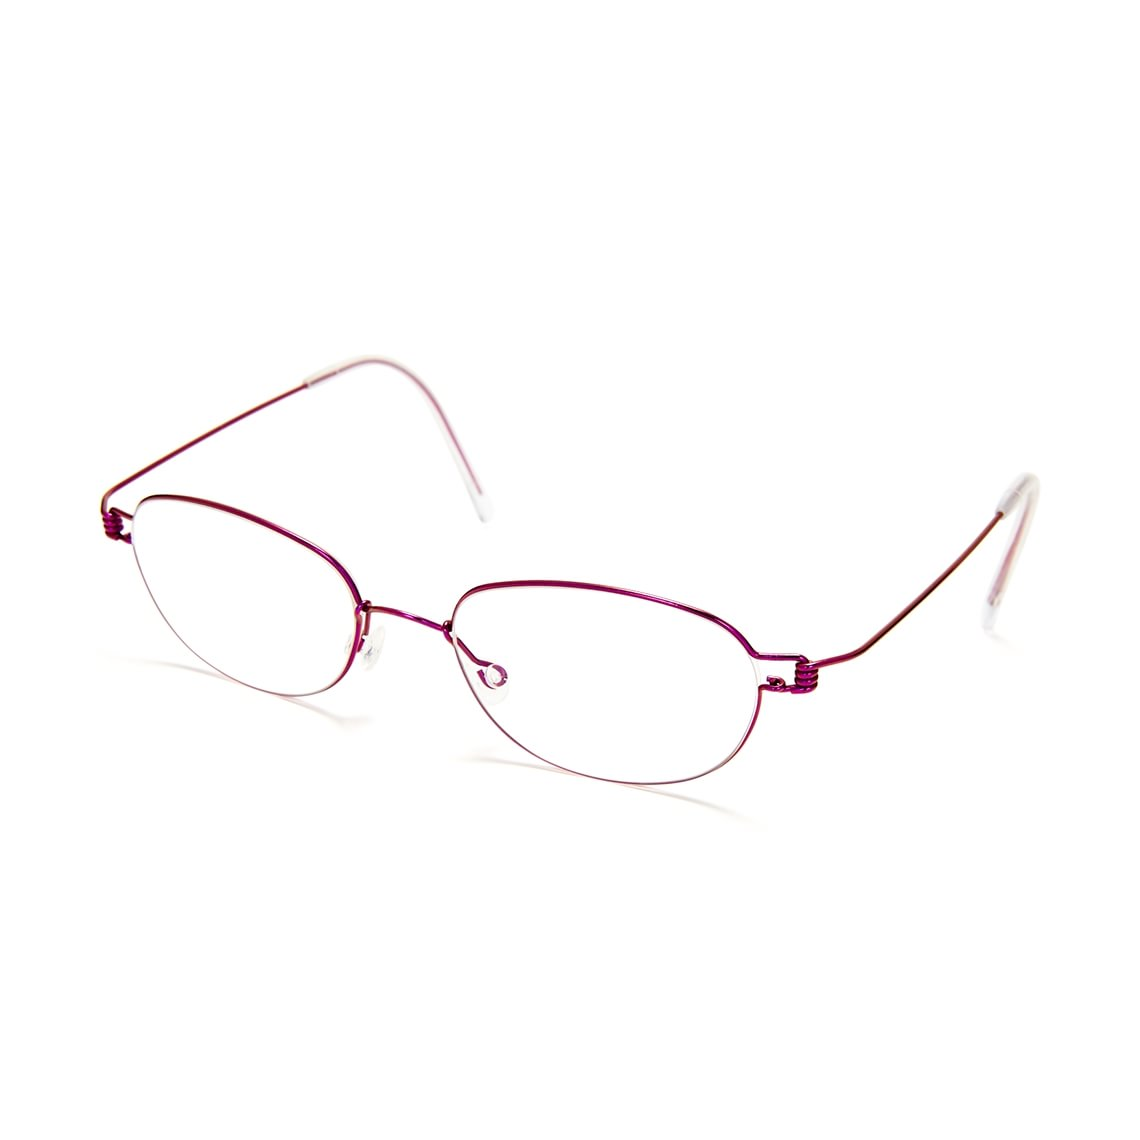 Lindberg Rim Randy temple round wide P75